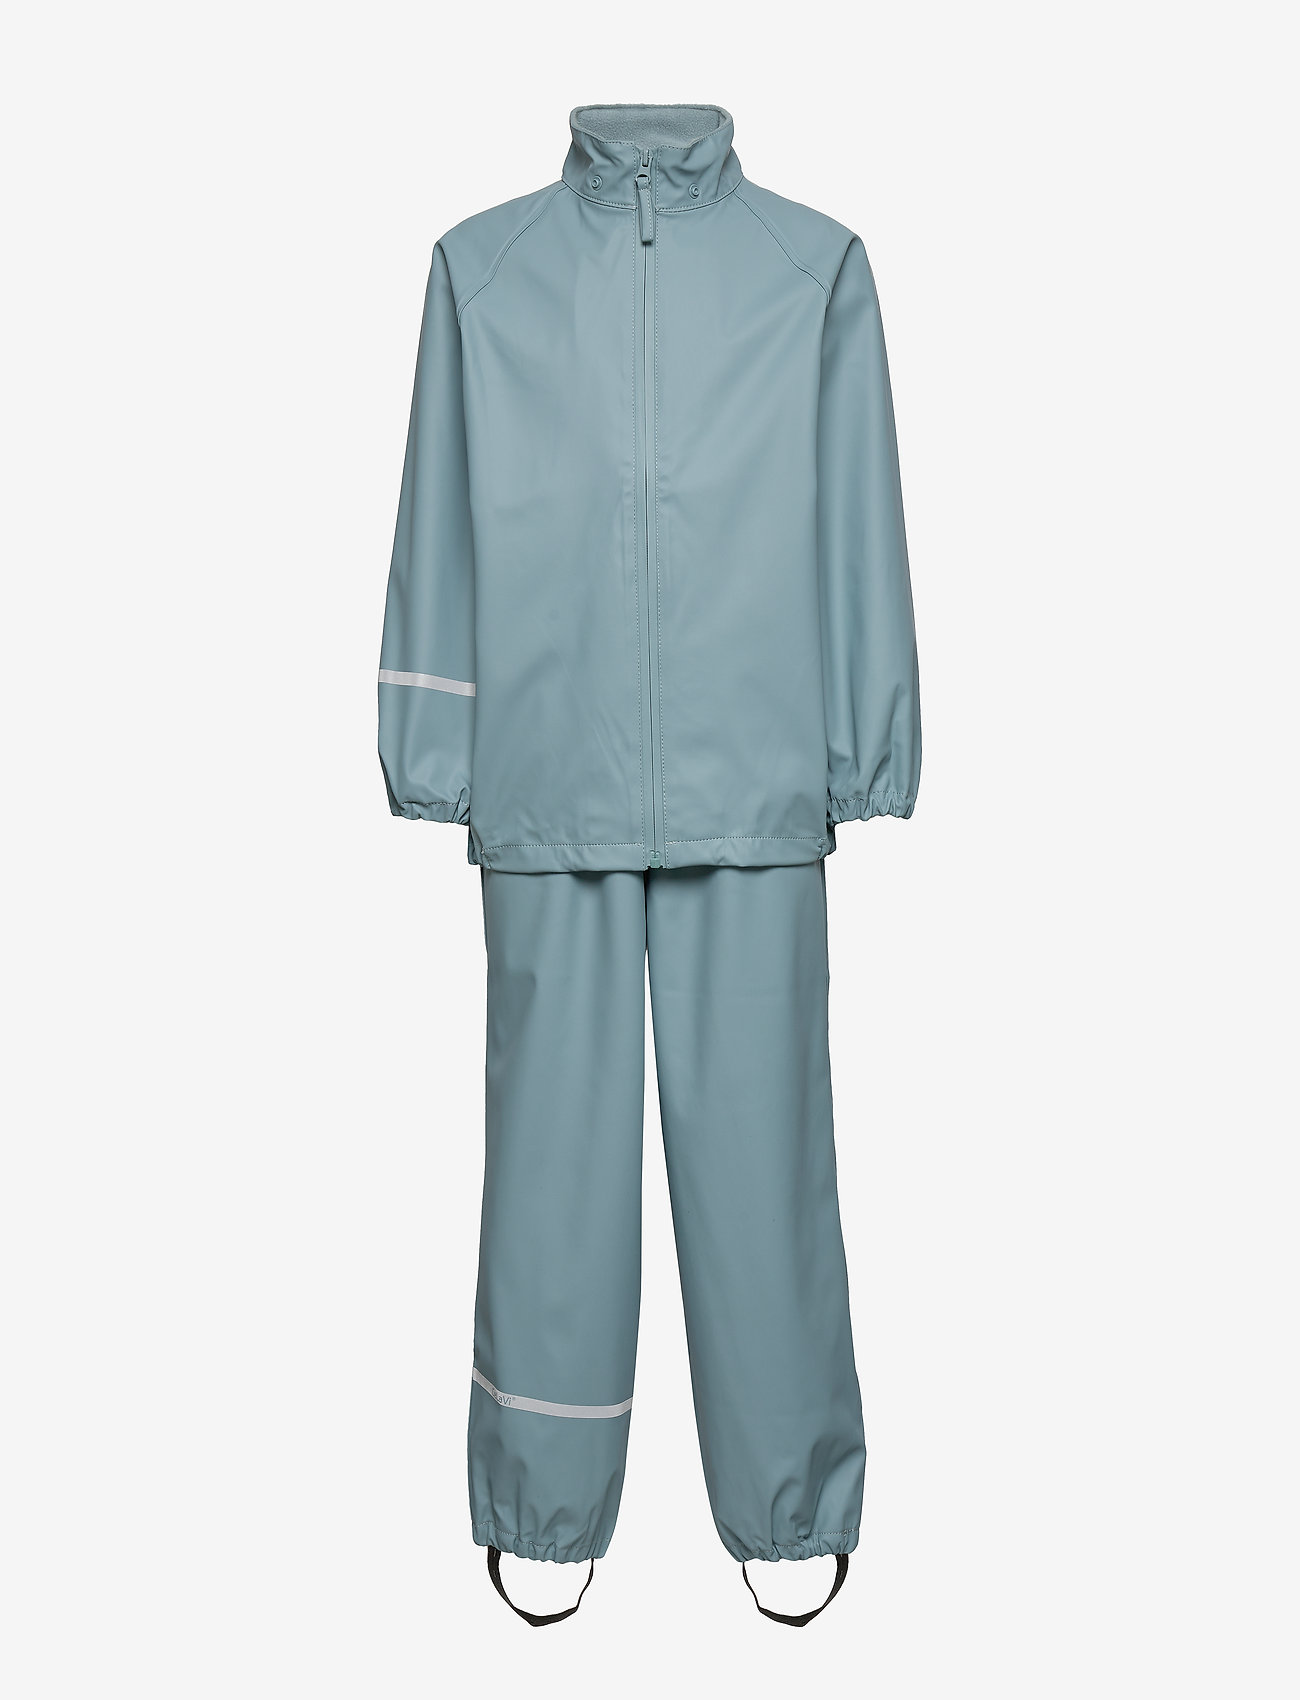 CeLaVi - Basic rainwear set -Recycle PU - ensembles - smoke blue - 1